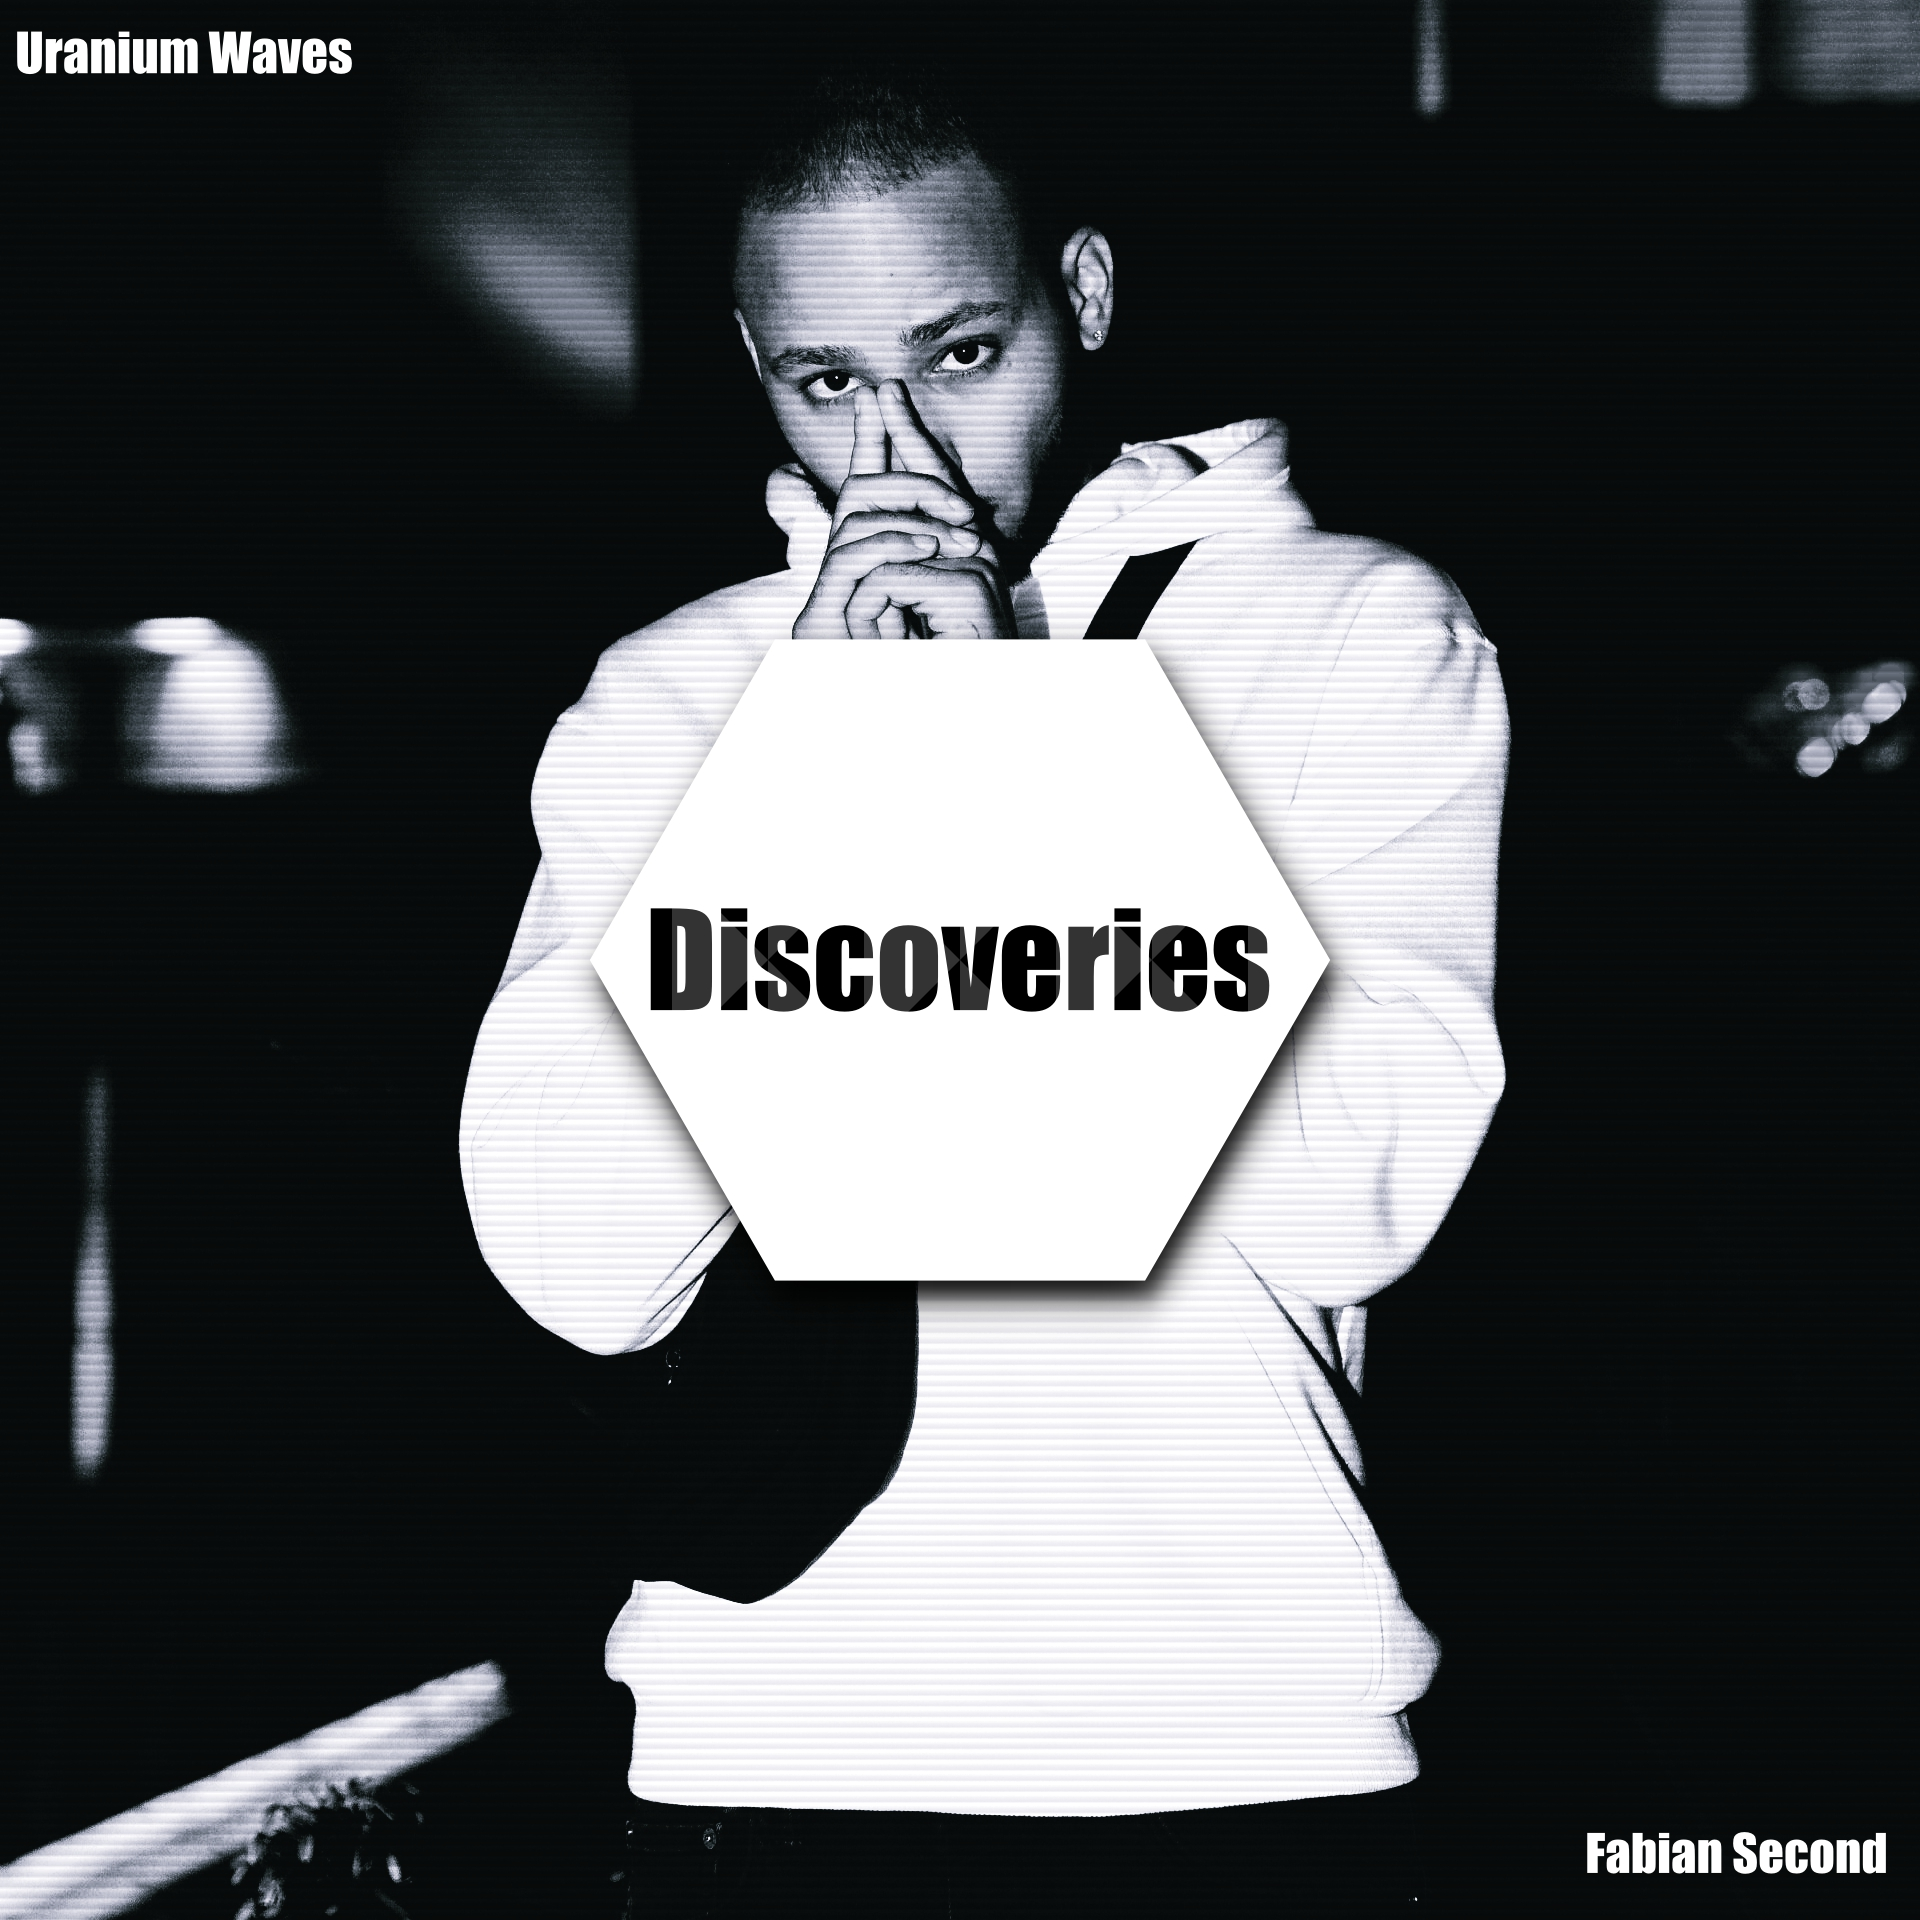 Discoveries | Janvier 2019 - We're starting 2019 with plenty of discoveries in all genre of Music. Many artists have revealed tremendous work that we think will potentially suit your taste. View below.